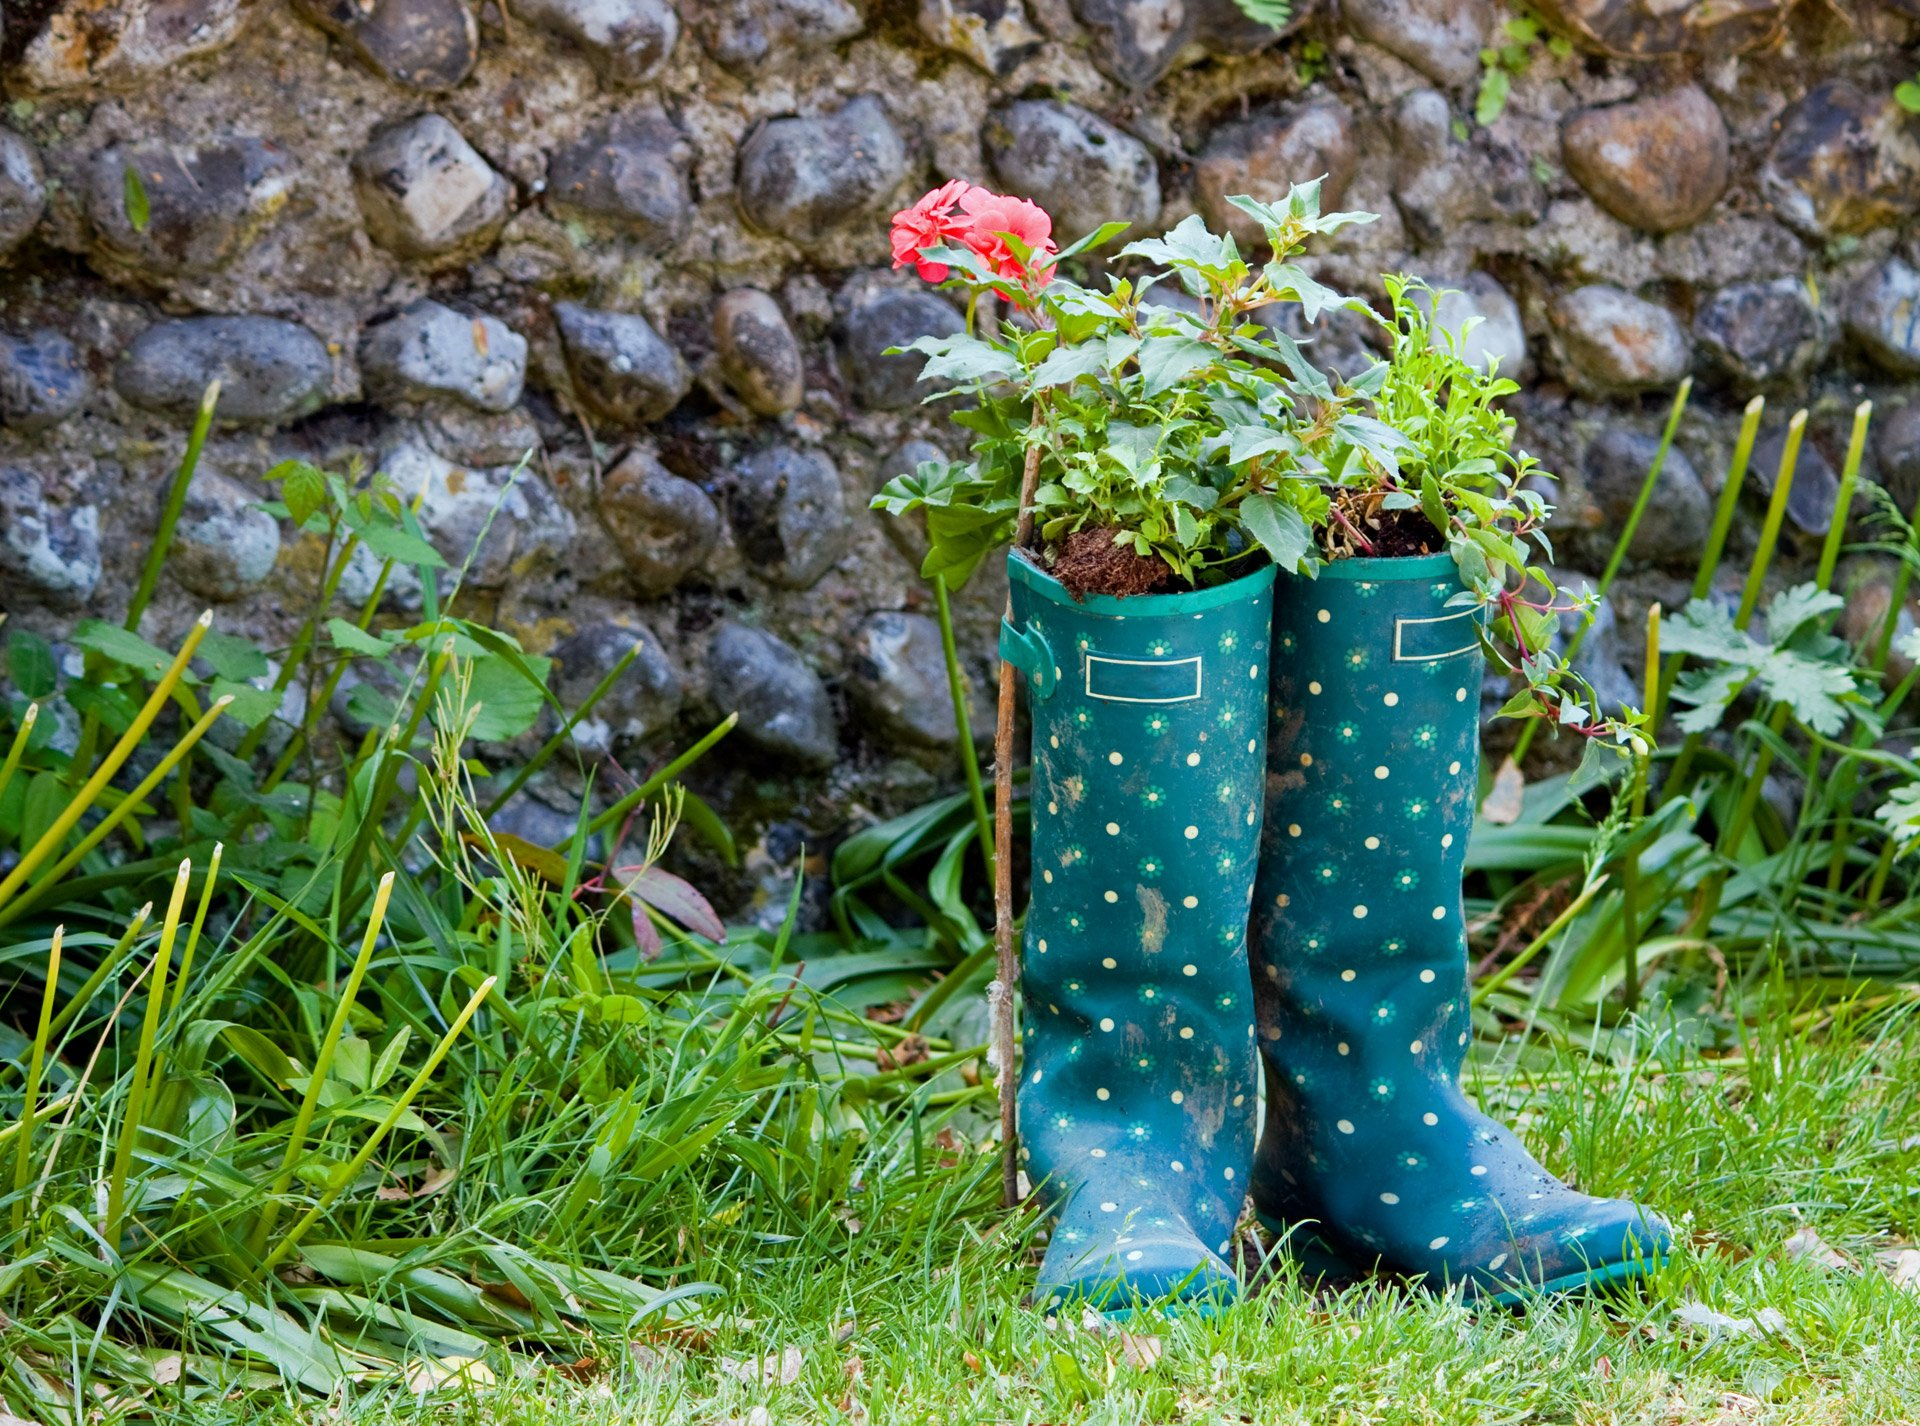 8 Upcycling Ideas for Your Garden